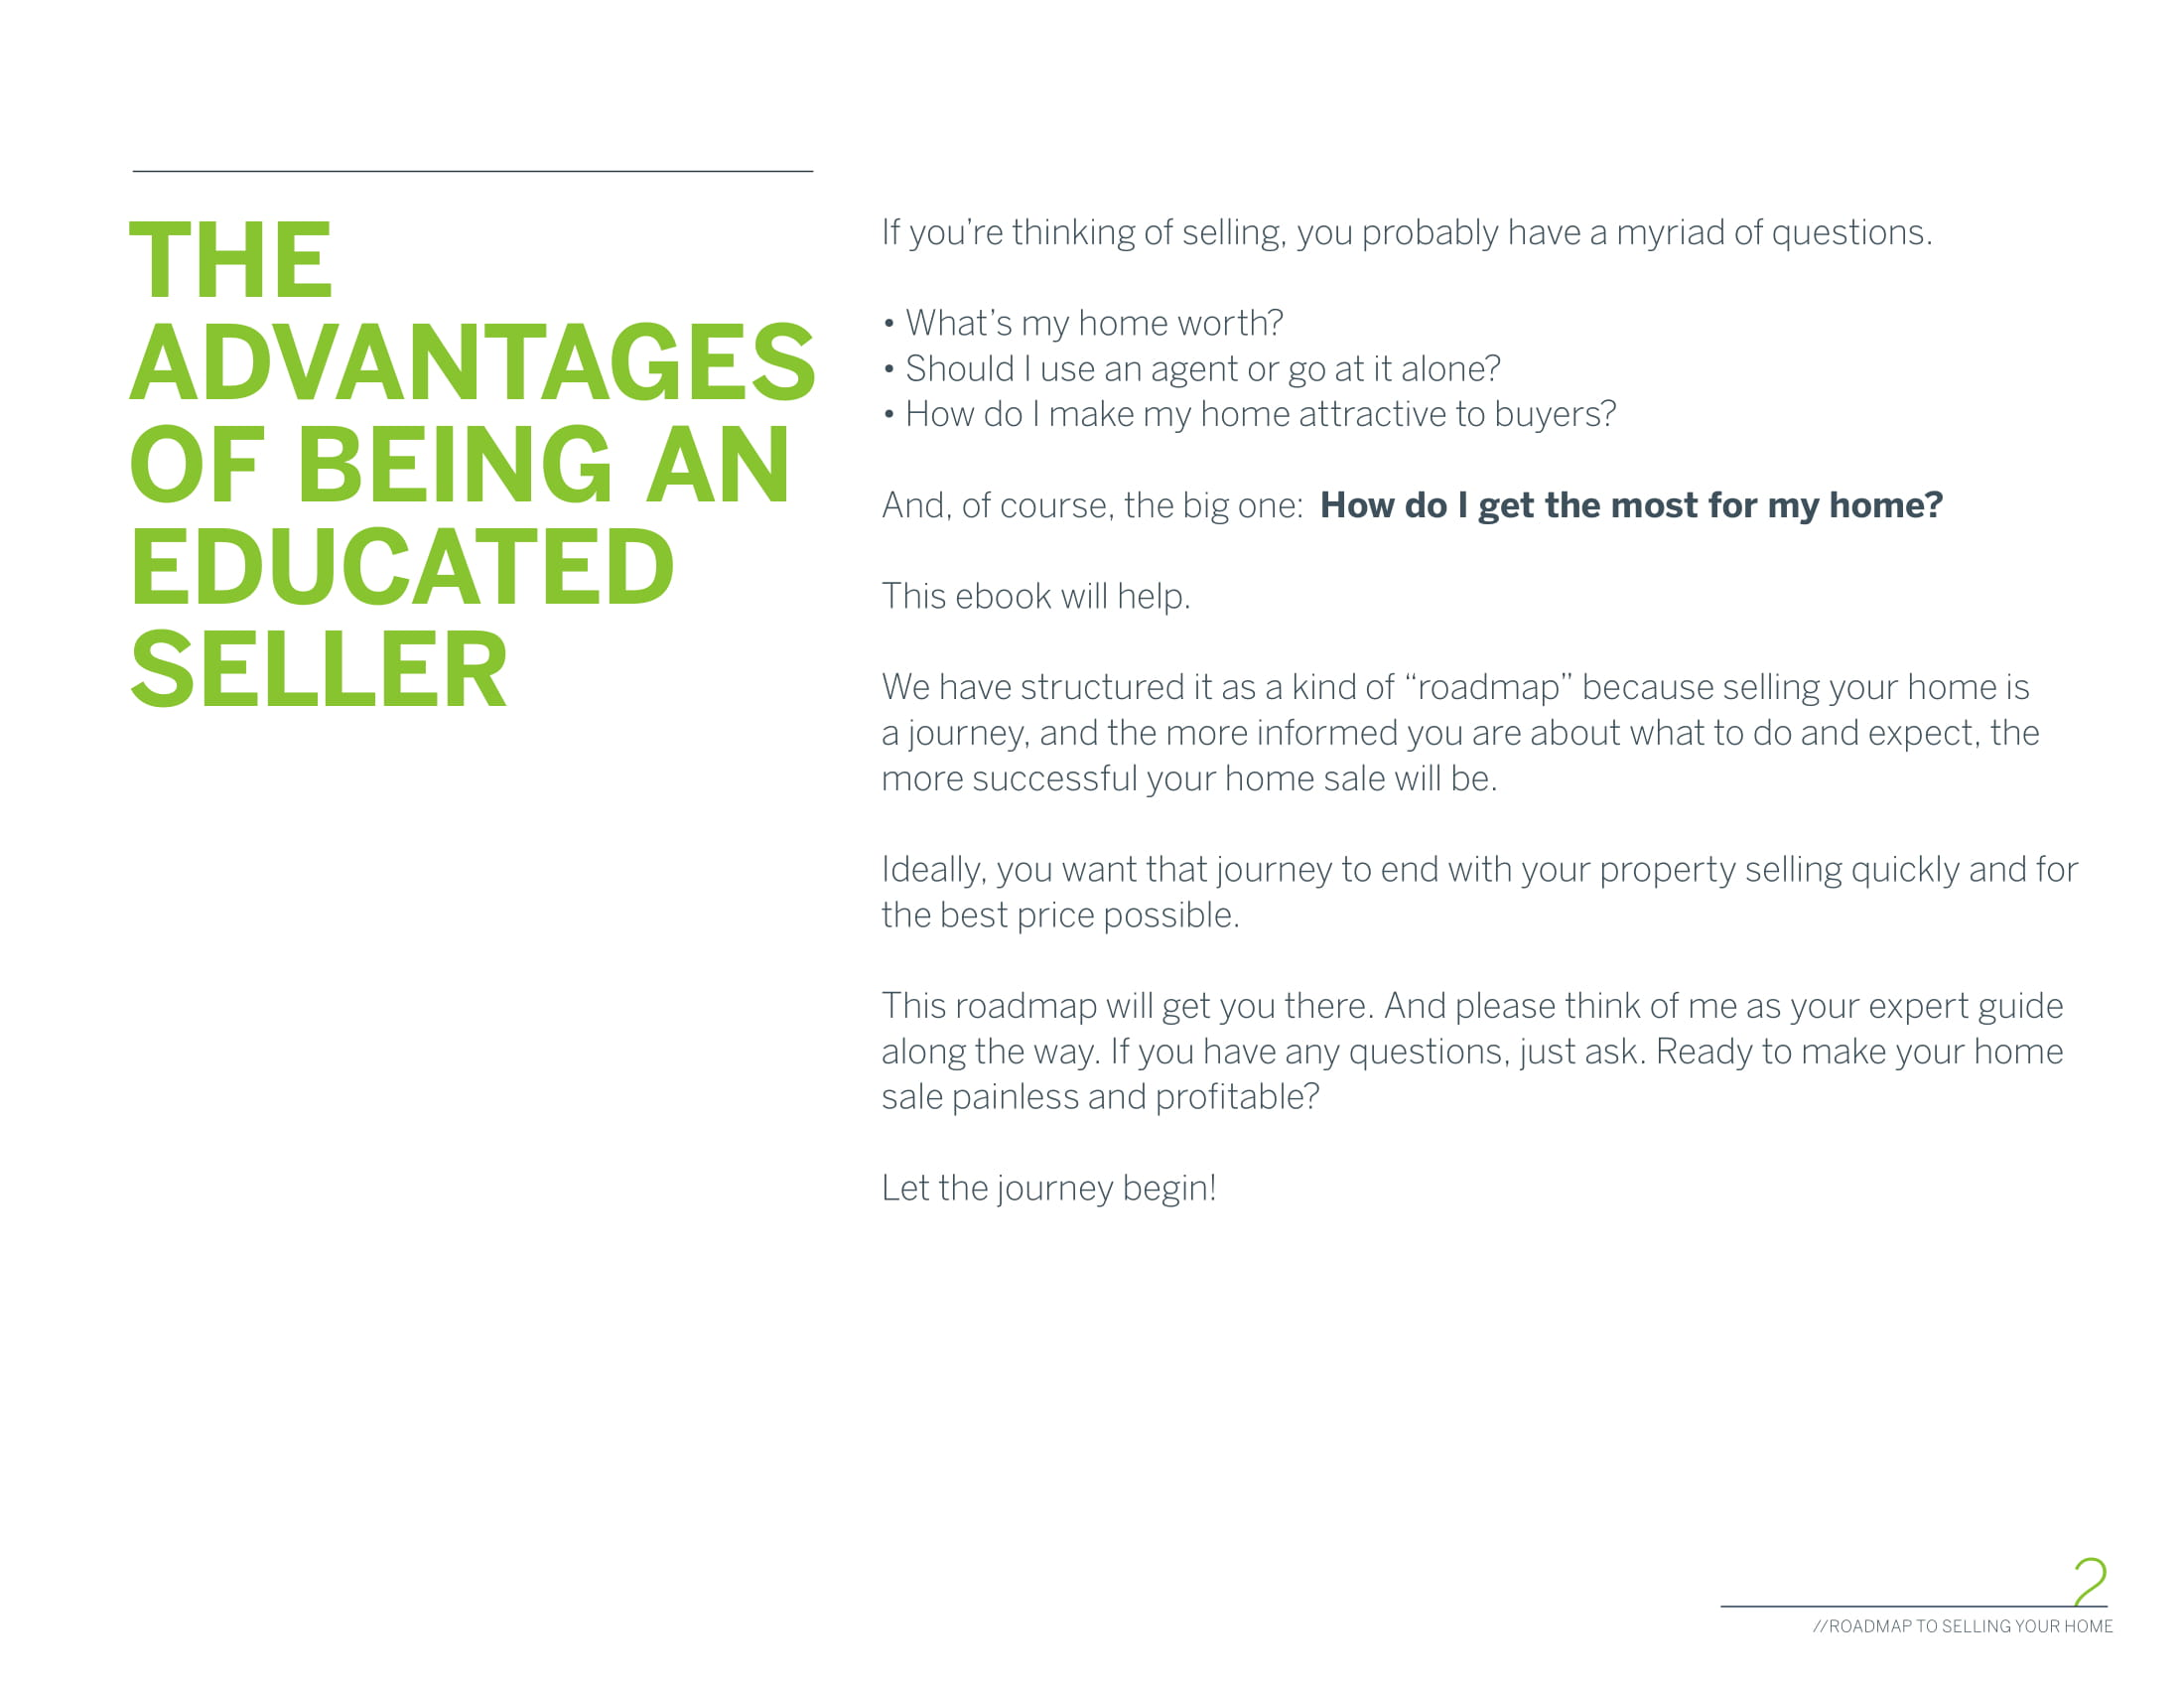 ChrisTarves-advantageOfBeingAnEducatedSeller